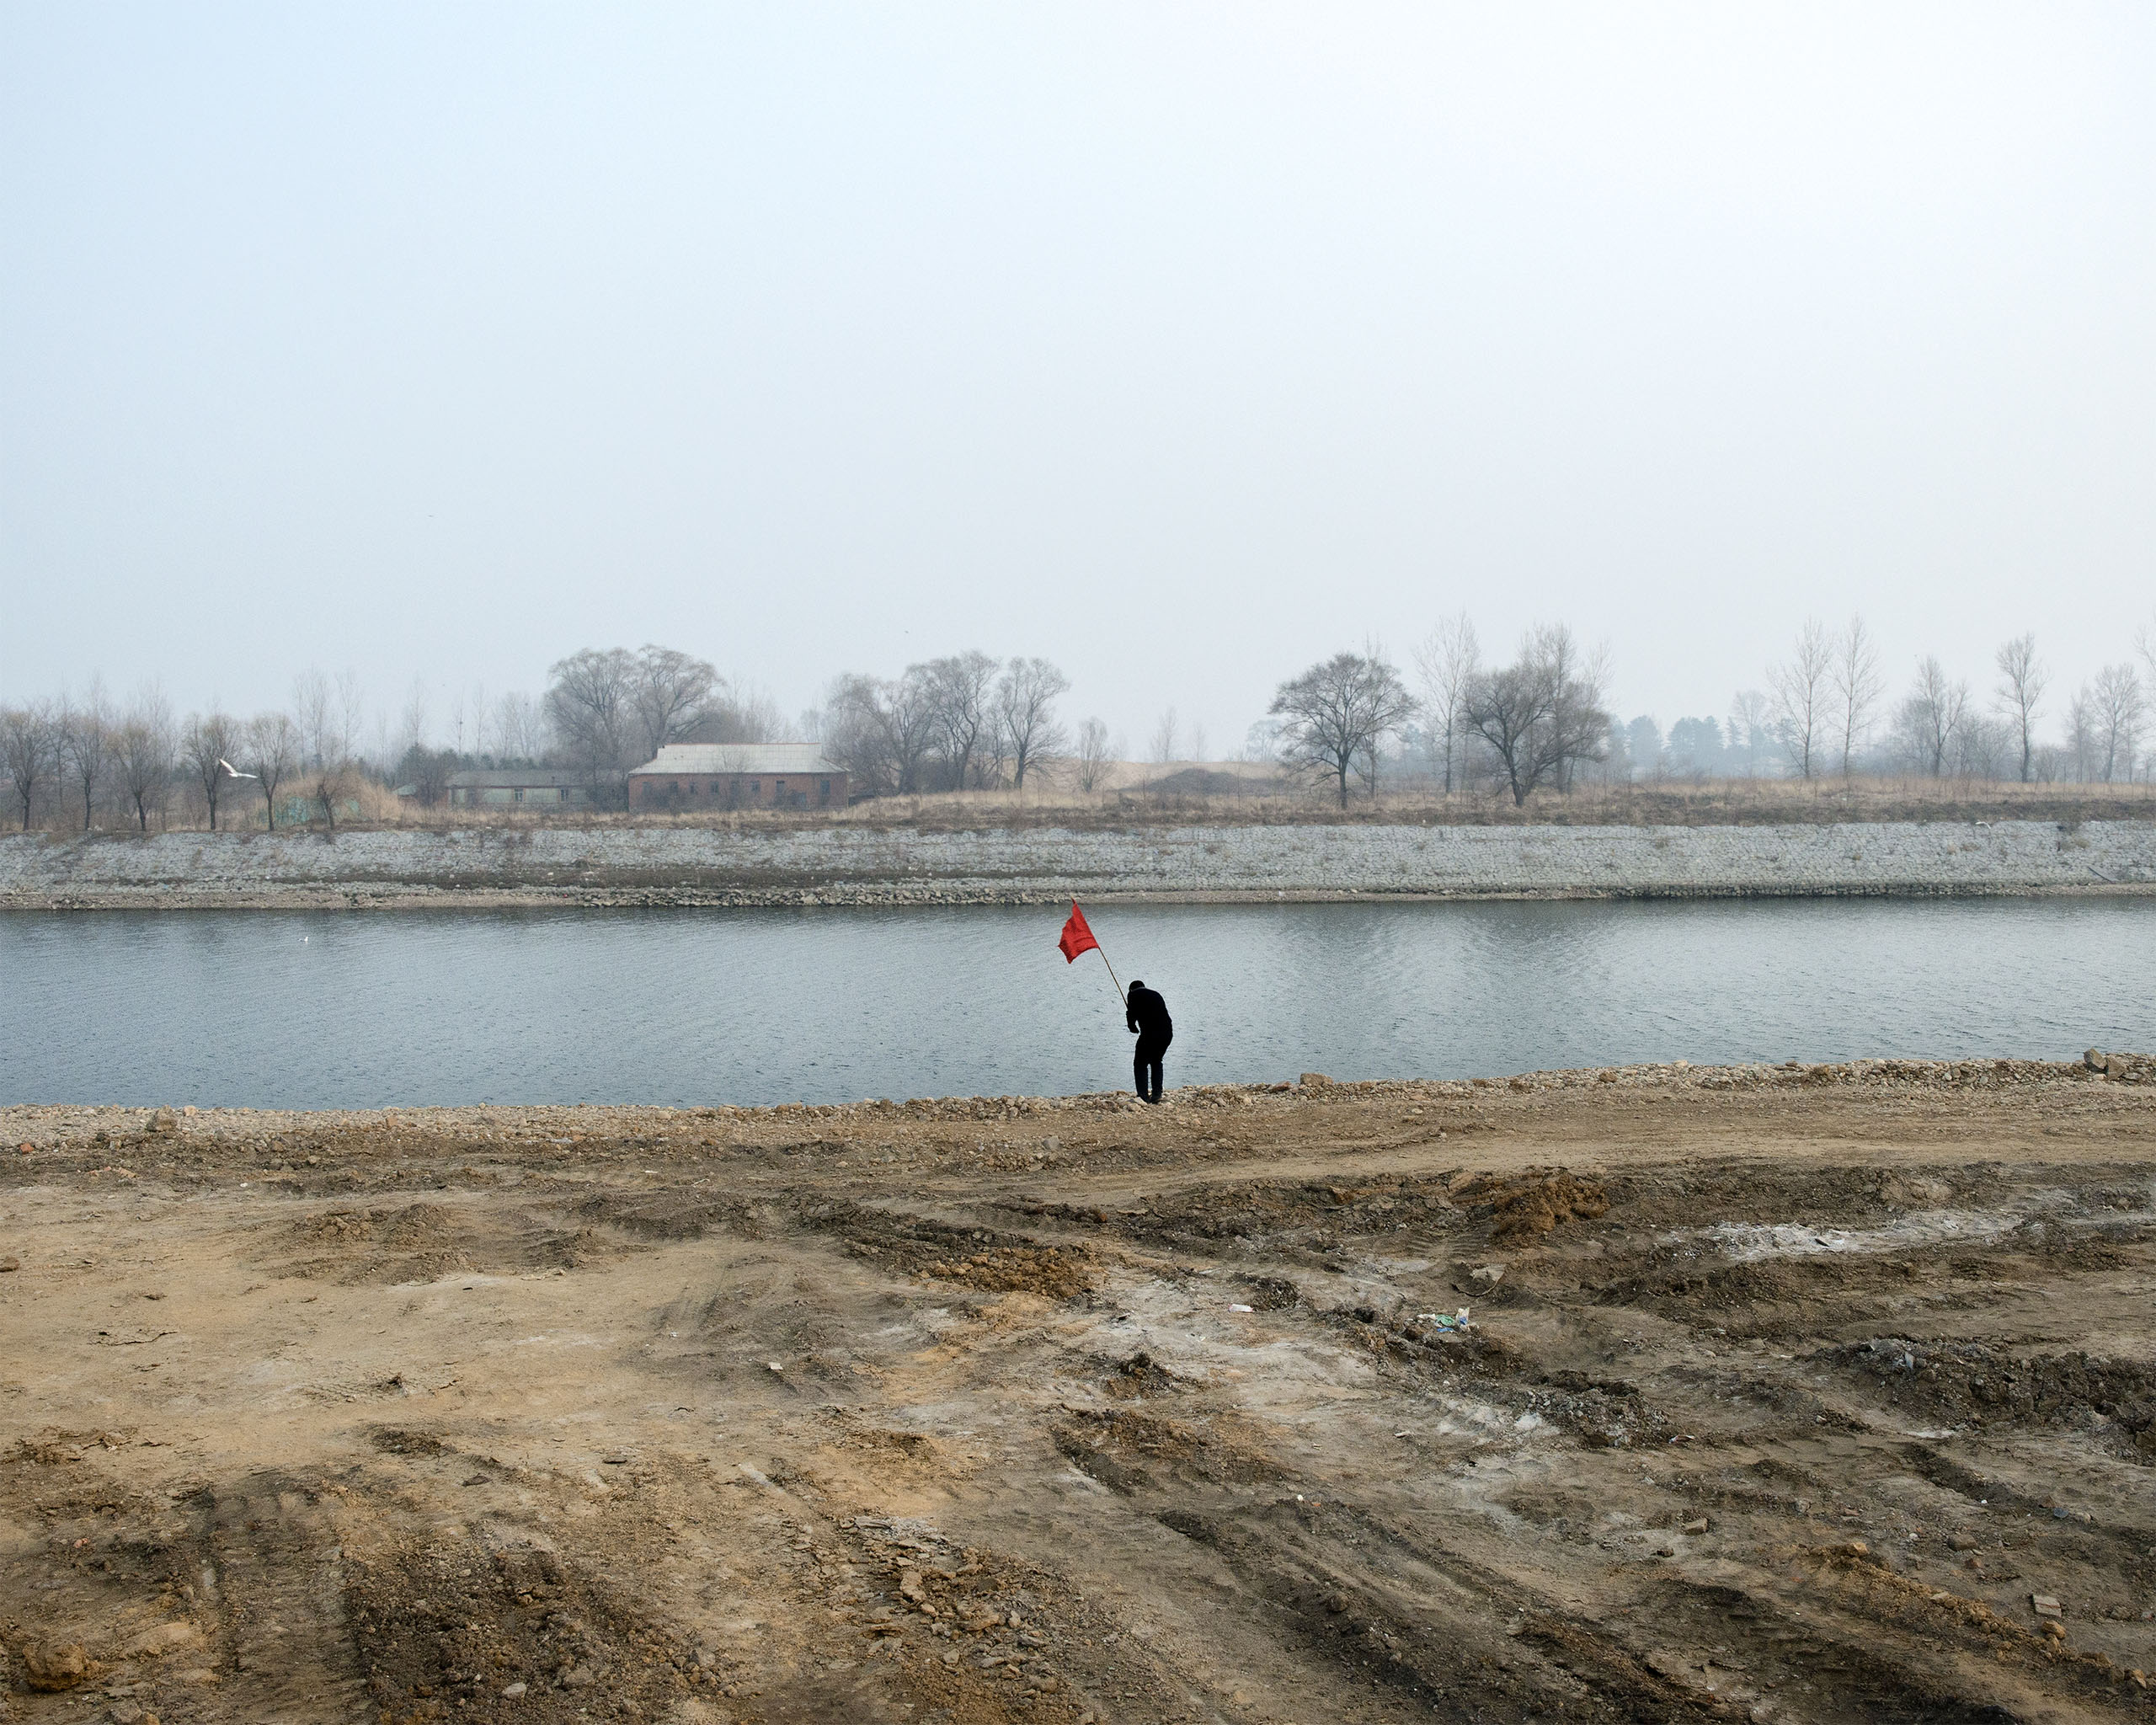 A man places a red flag at the river bank across from north korea border in  Dandong, China.